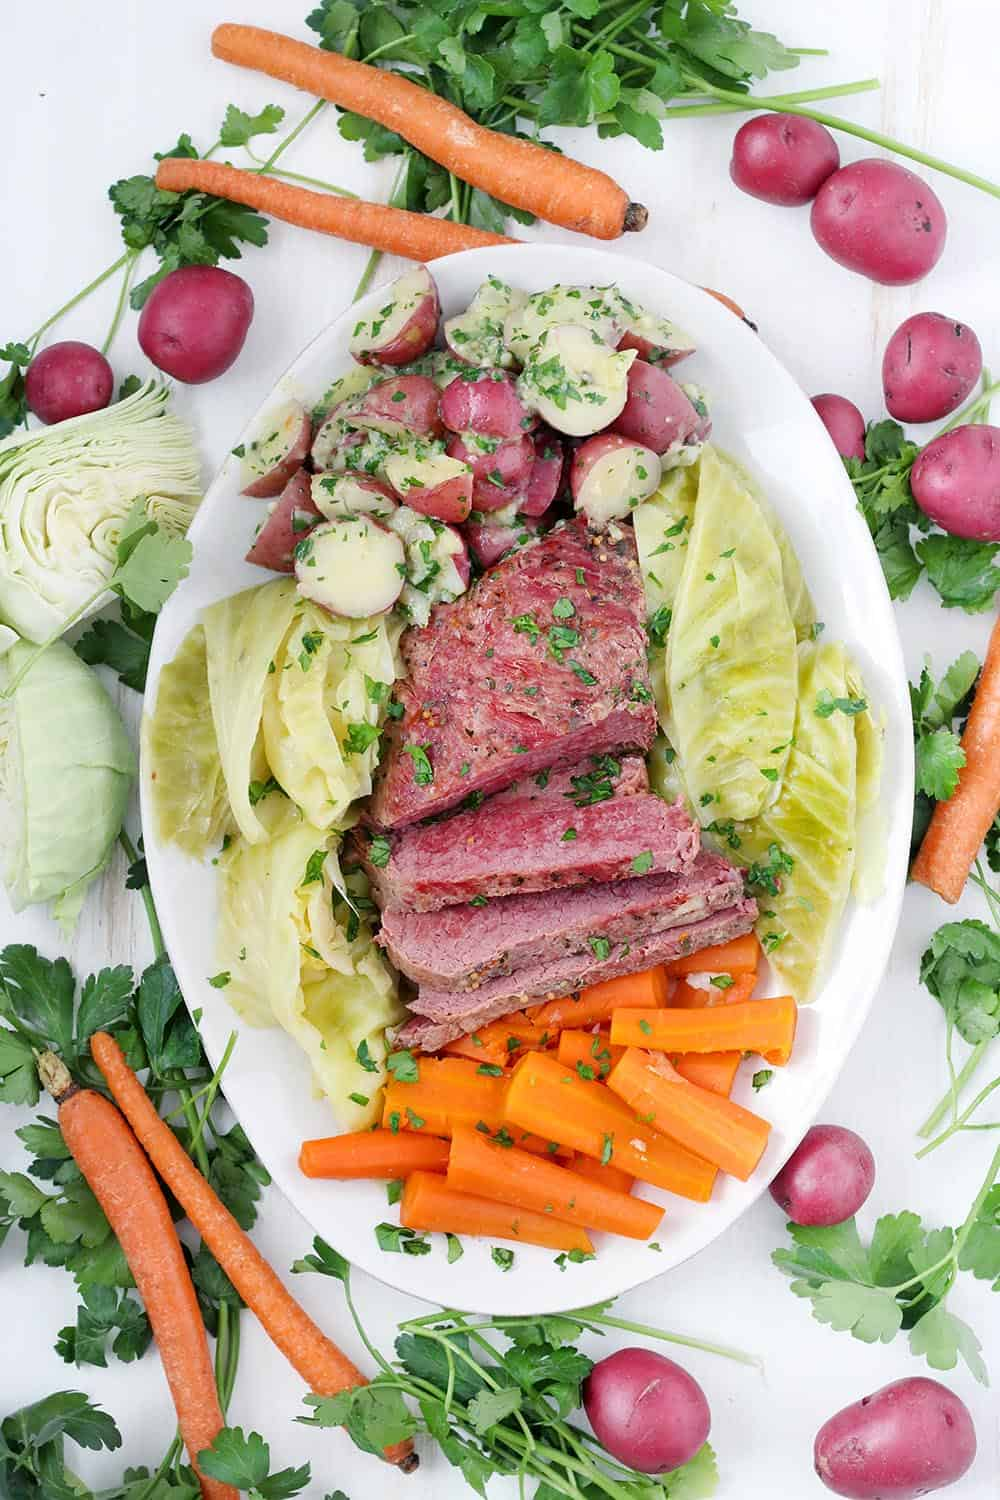 Celebrate St. Patrick's day with this recipe for Instant Pot Corned Beef with Cabbage, Carrots, and Buttered Potatoes! It takes half the amount of time as on the stovetop when you use a pressure cooker. The best part is the potatoes, smothered in melted butter and fresh parsley, and the corned beef is perfectly cooked to a fall-apart texture.